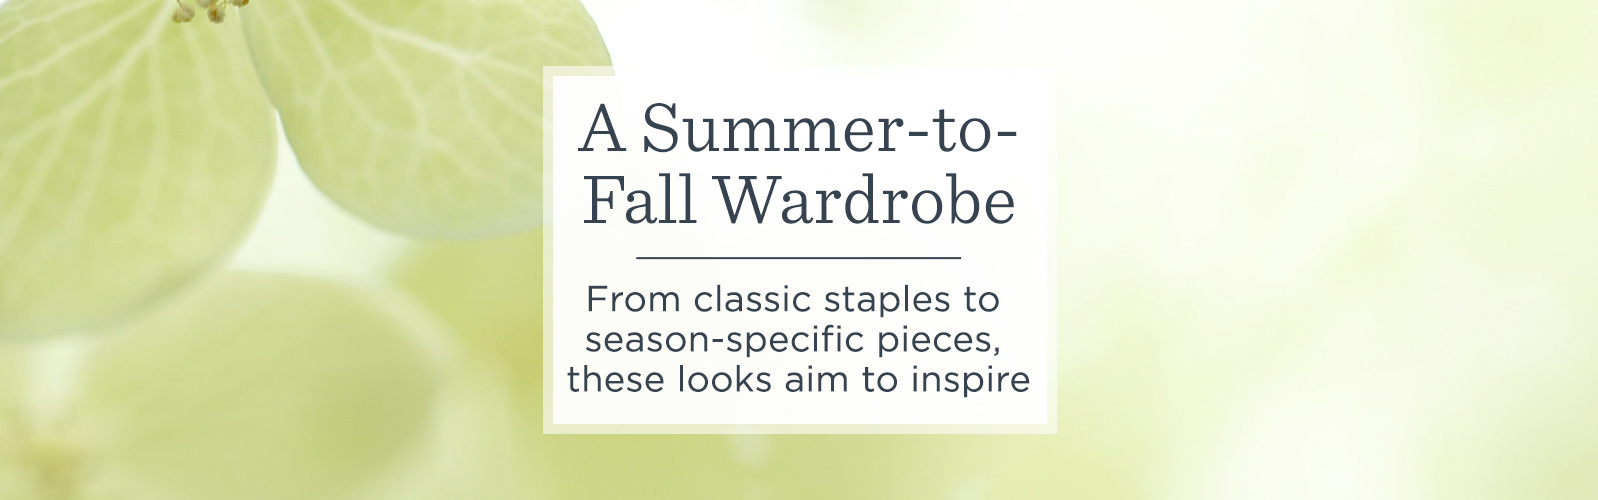 A Summer-to-Fall Wardrobe. From classic staples to season-specific pieces, these looks aim to inspire